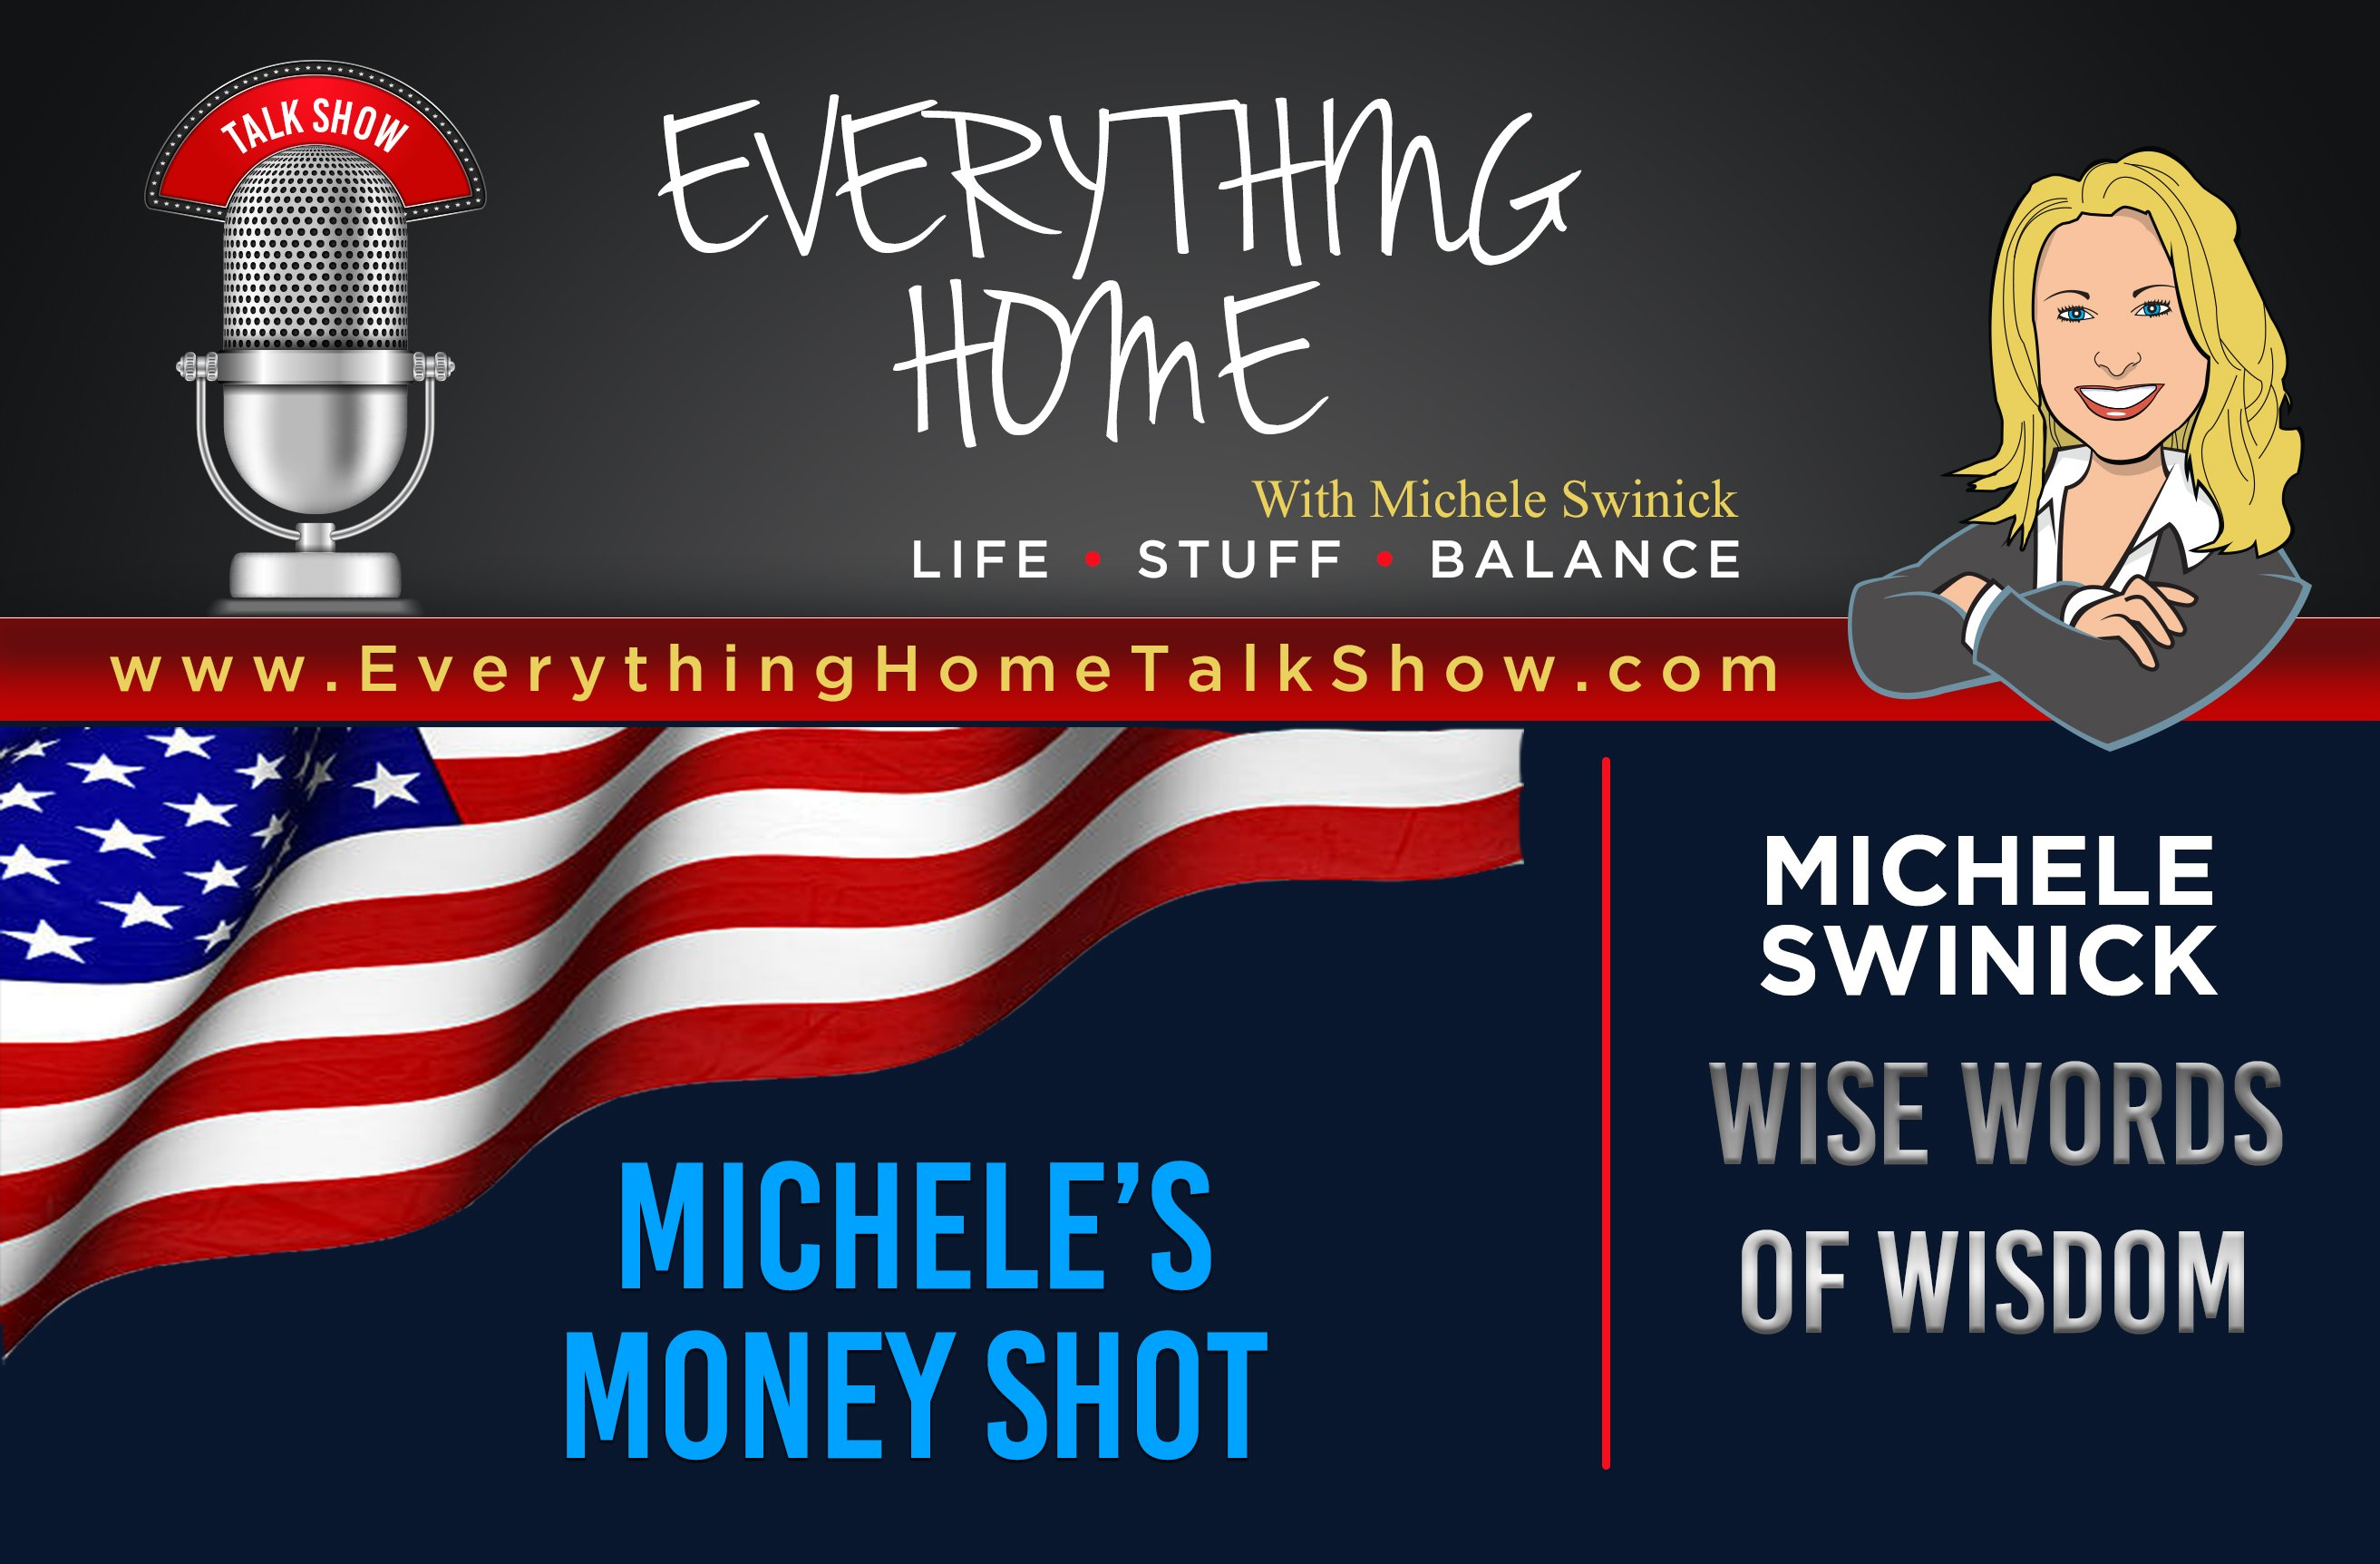 Everything Home Talk Radio Show & Podcast - MICHELE'S MONEY SHOT - Wise Words Of Wisdom